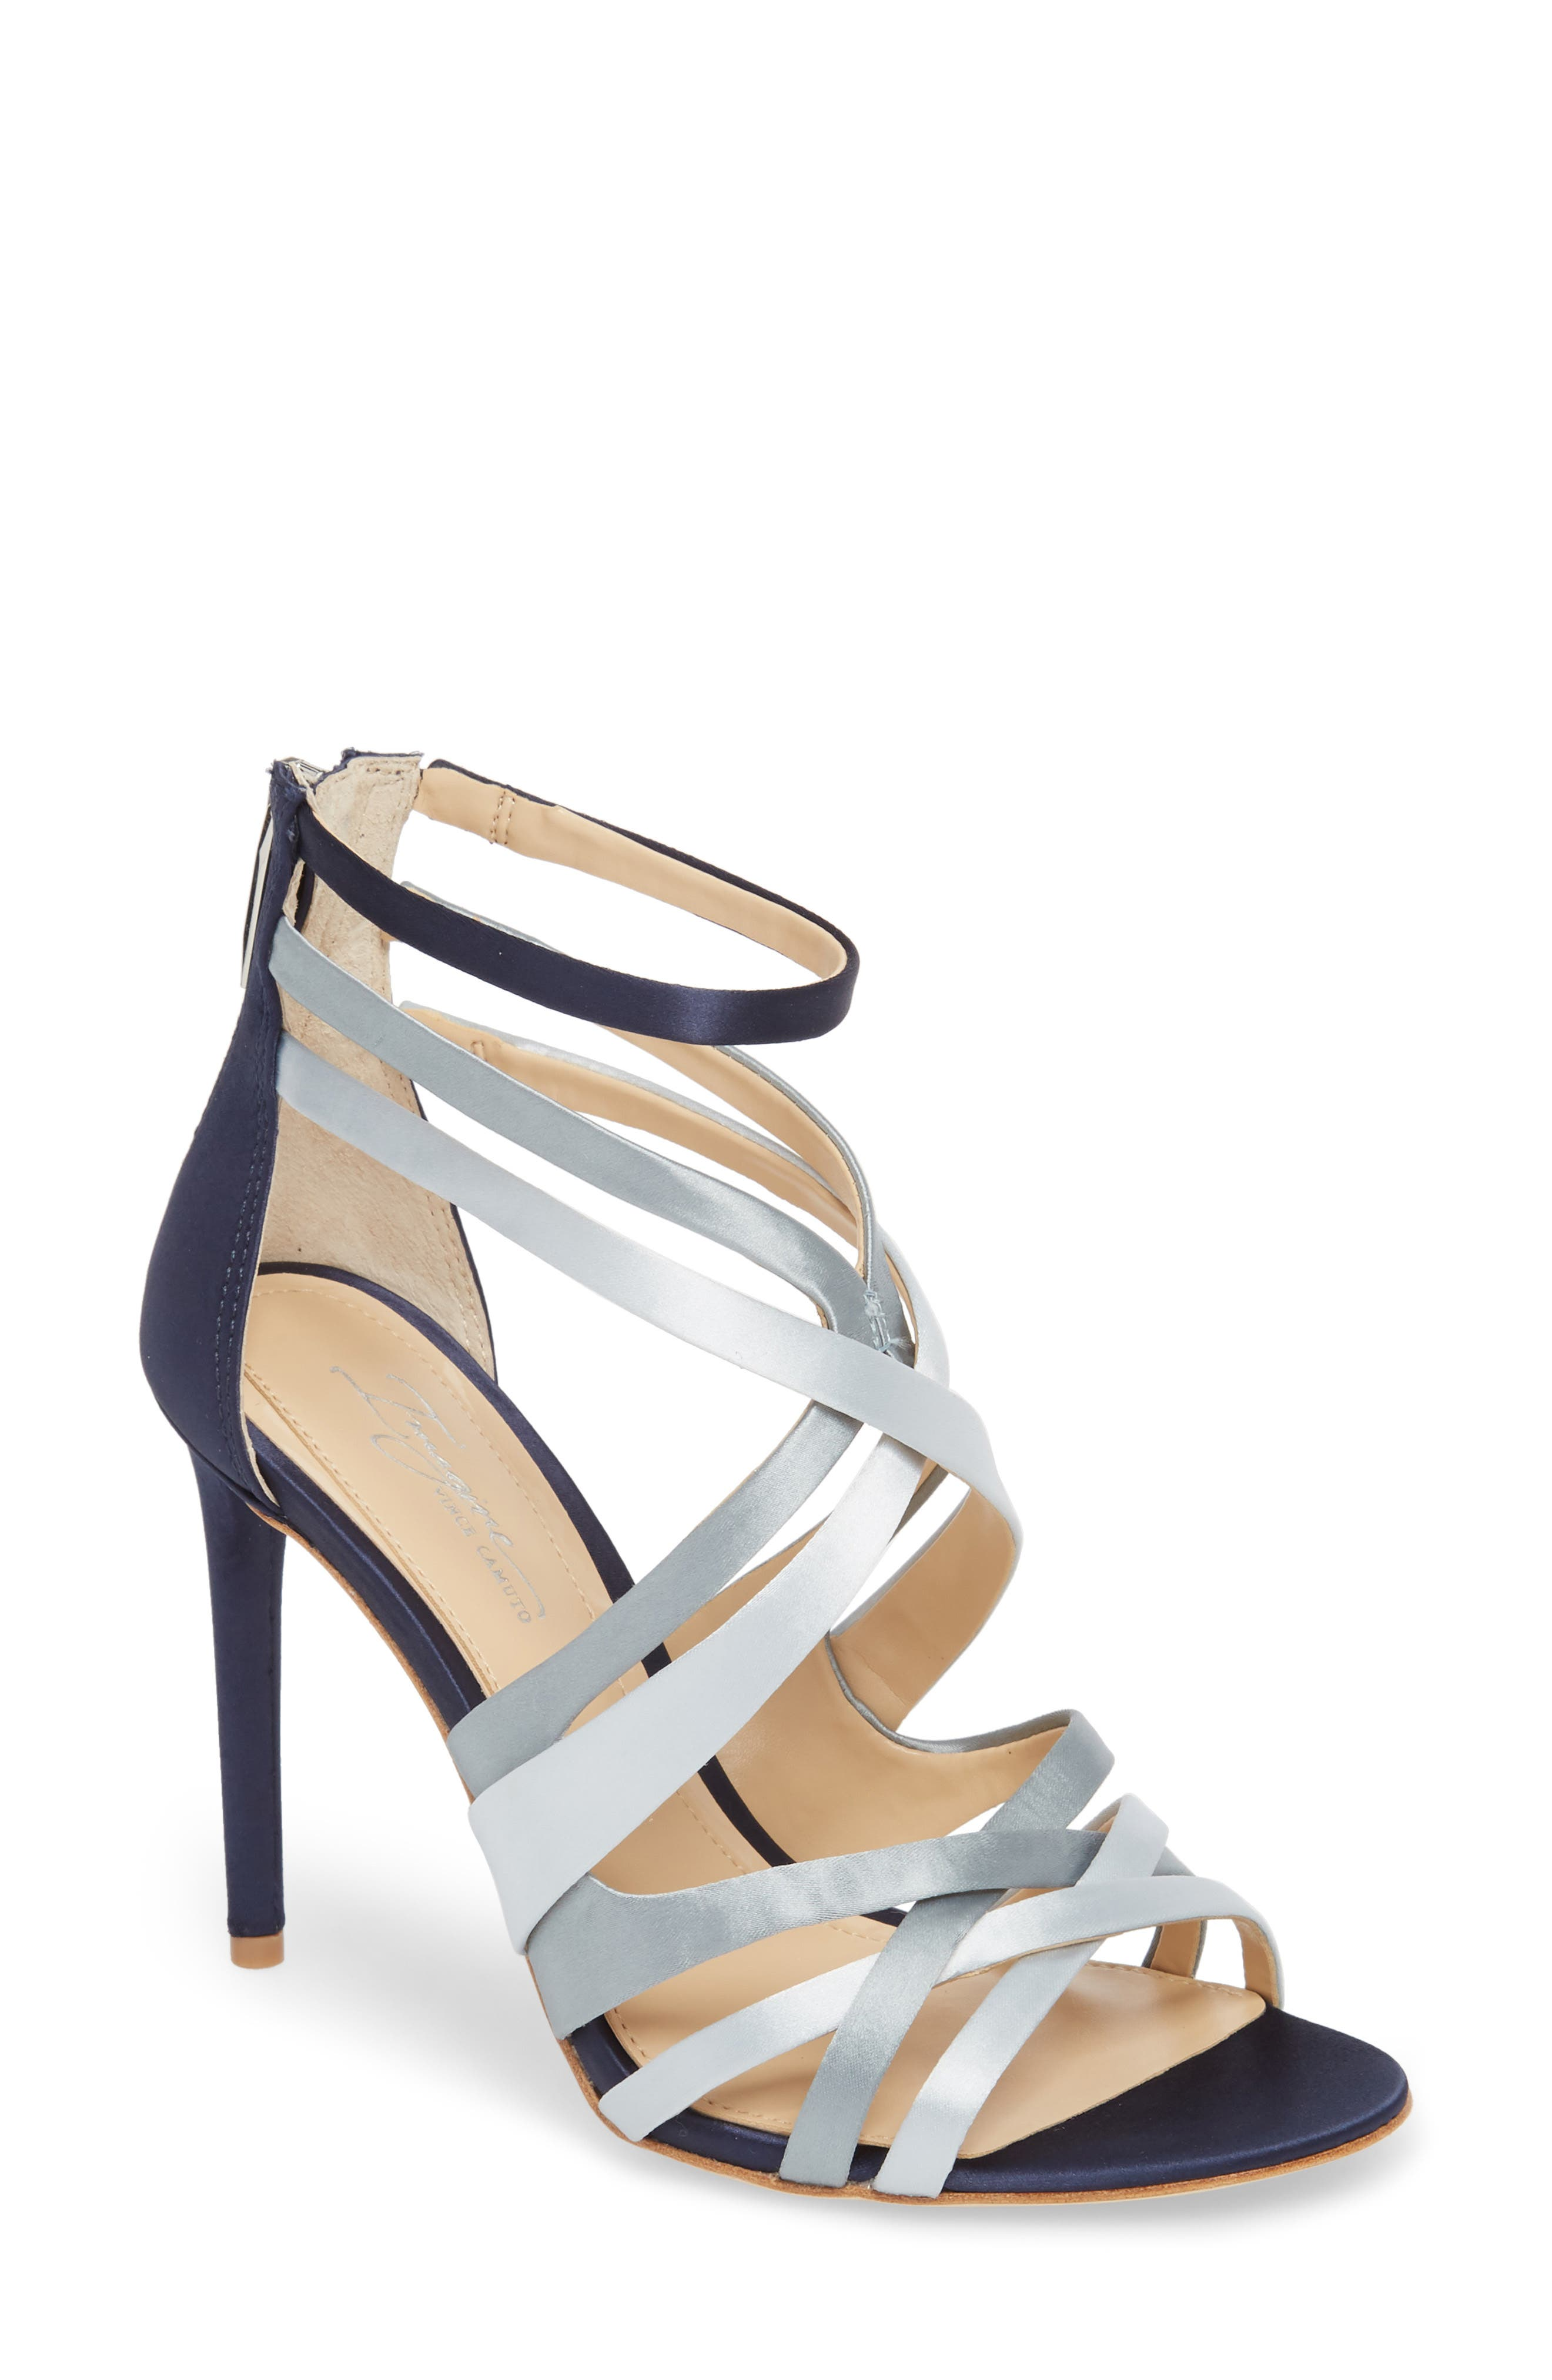 Imagine by Vince Camuto Ress Sandal (Women)